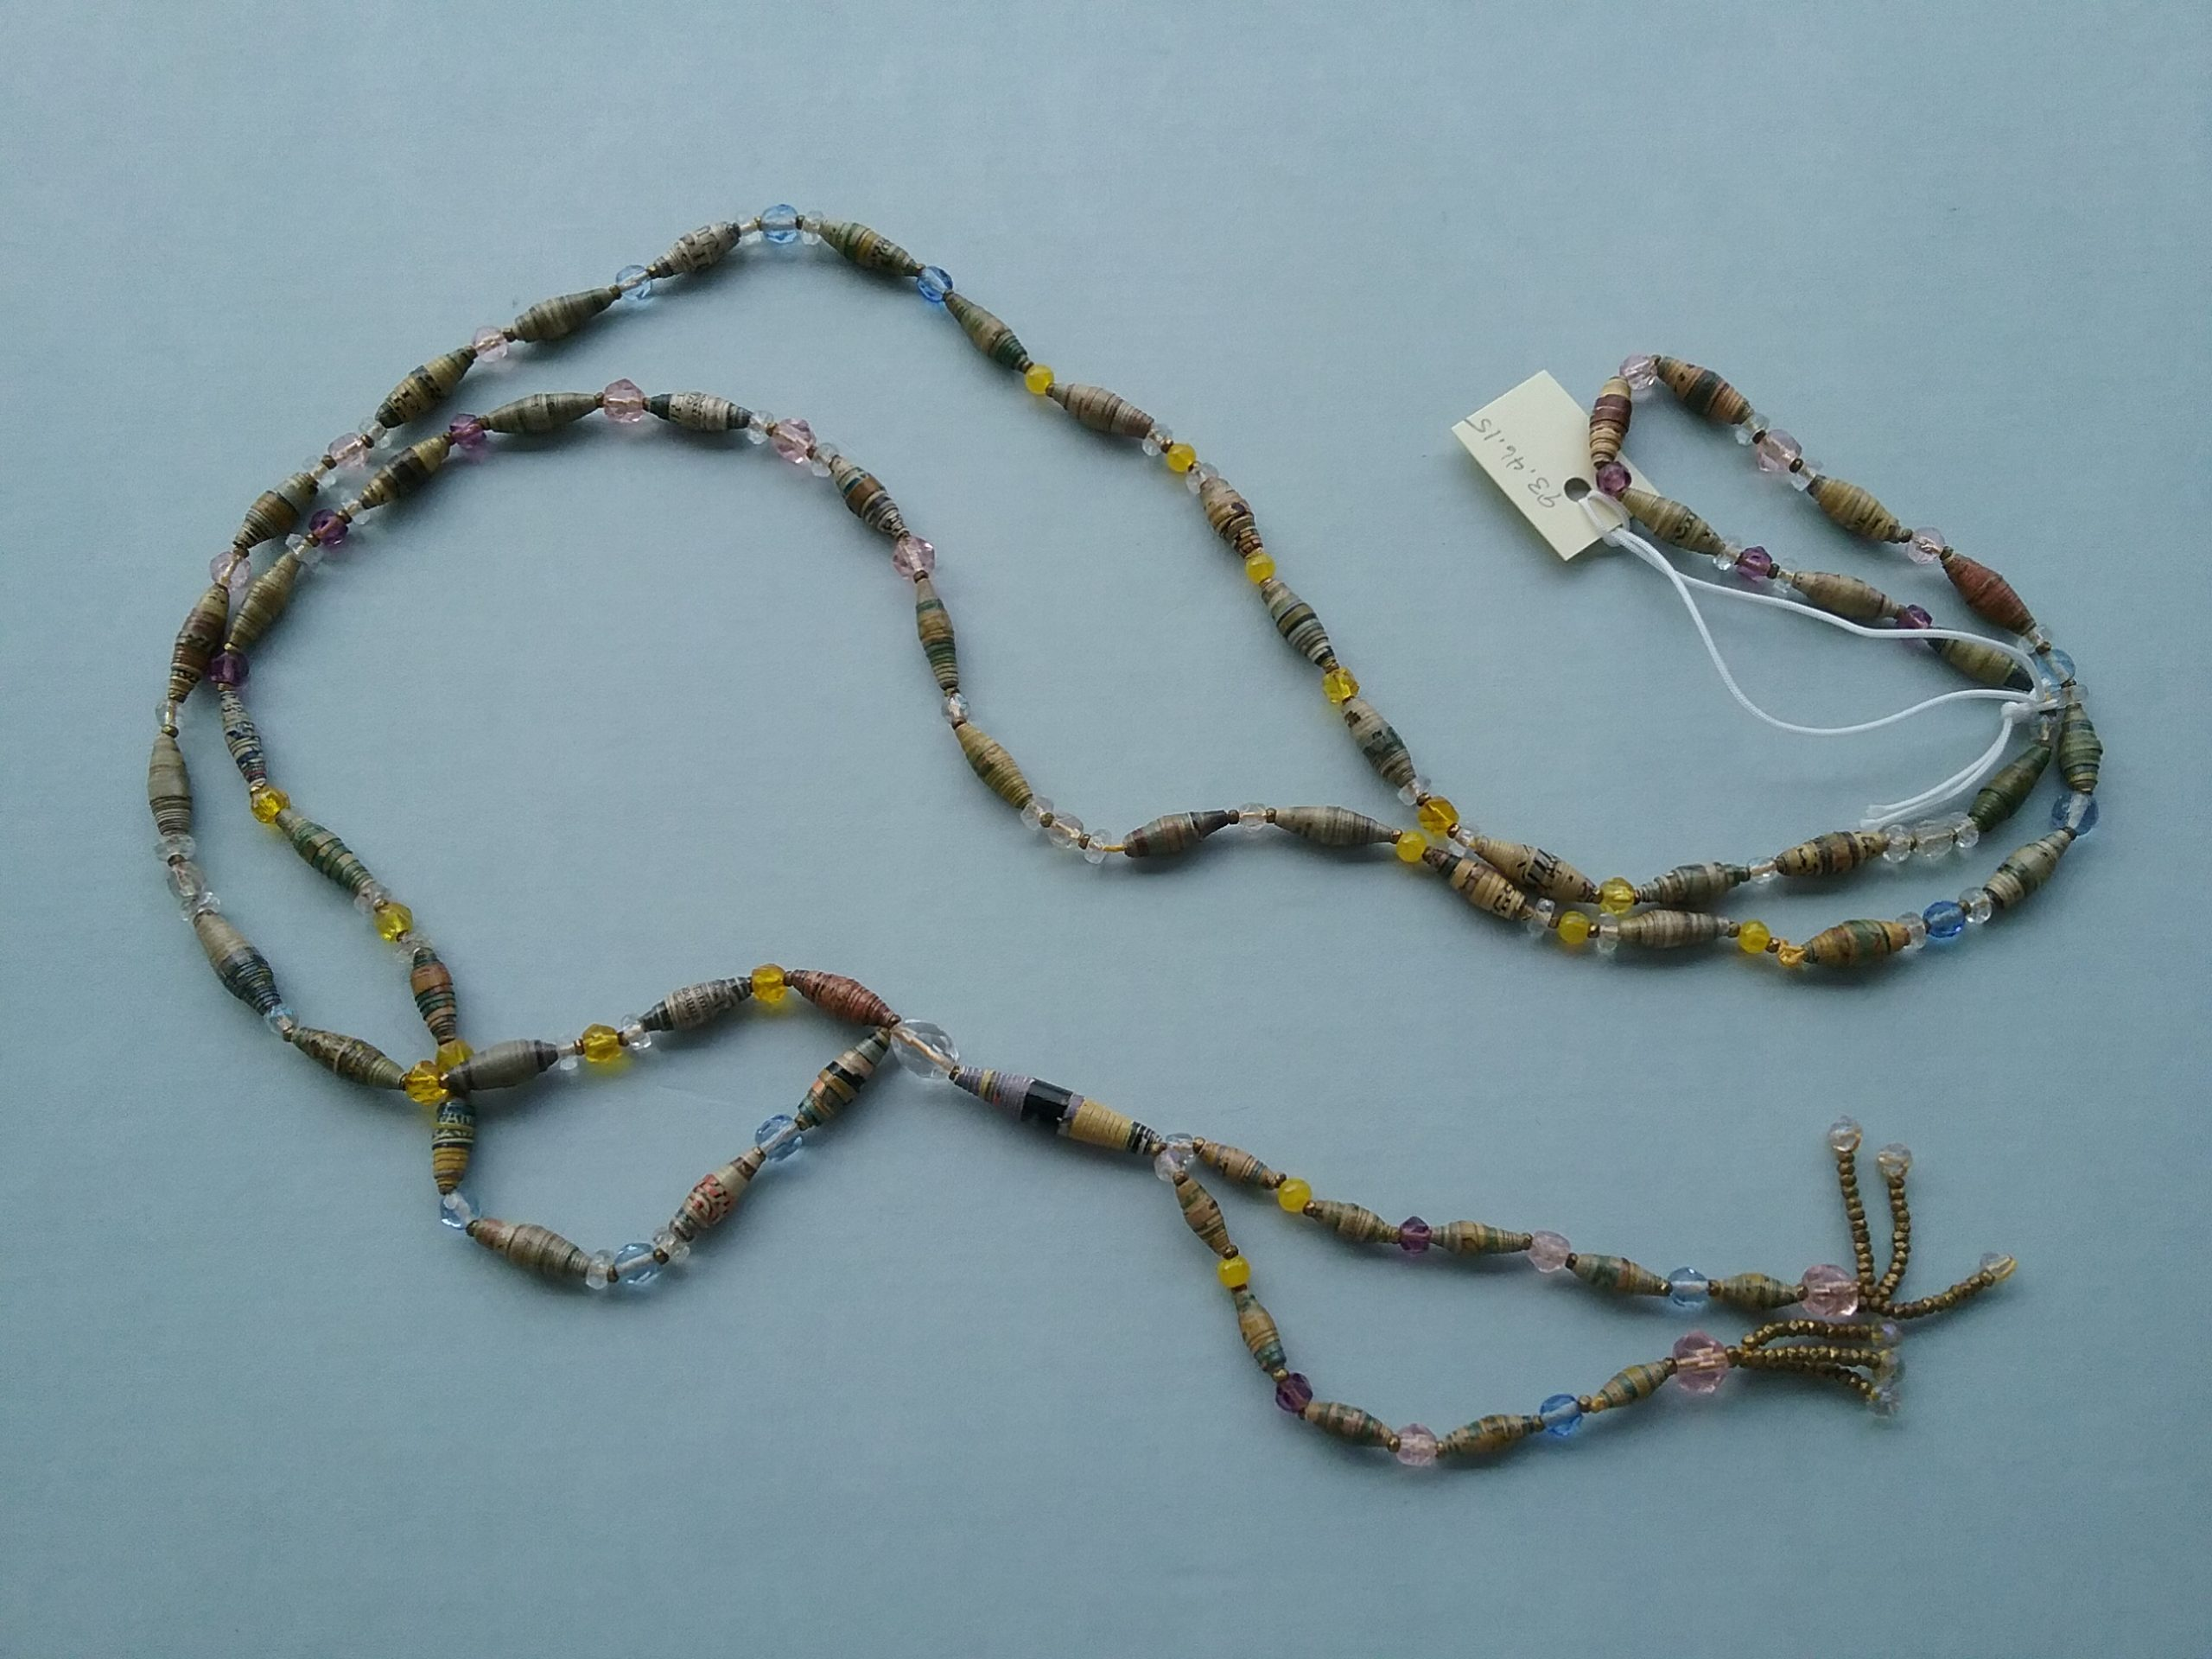 Necklace of Rolled Beads: The beads in this necklace have been made of strips of a material (likely paper) that have been rolled to form the beads. Donated by Lucy Tanner. MCHS collections, #1993.46.15.